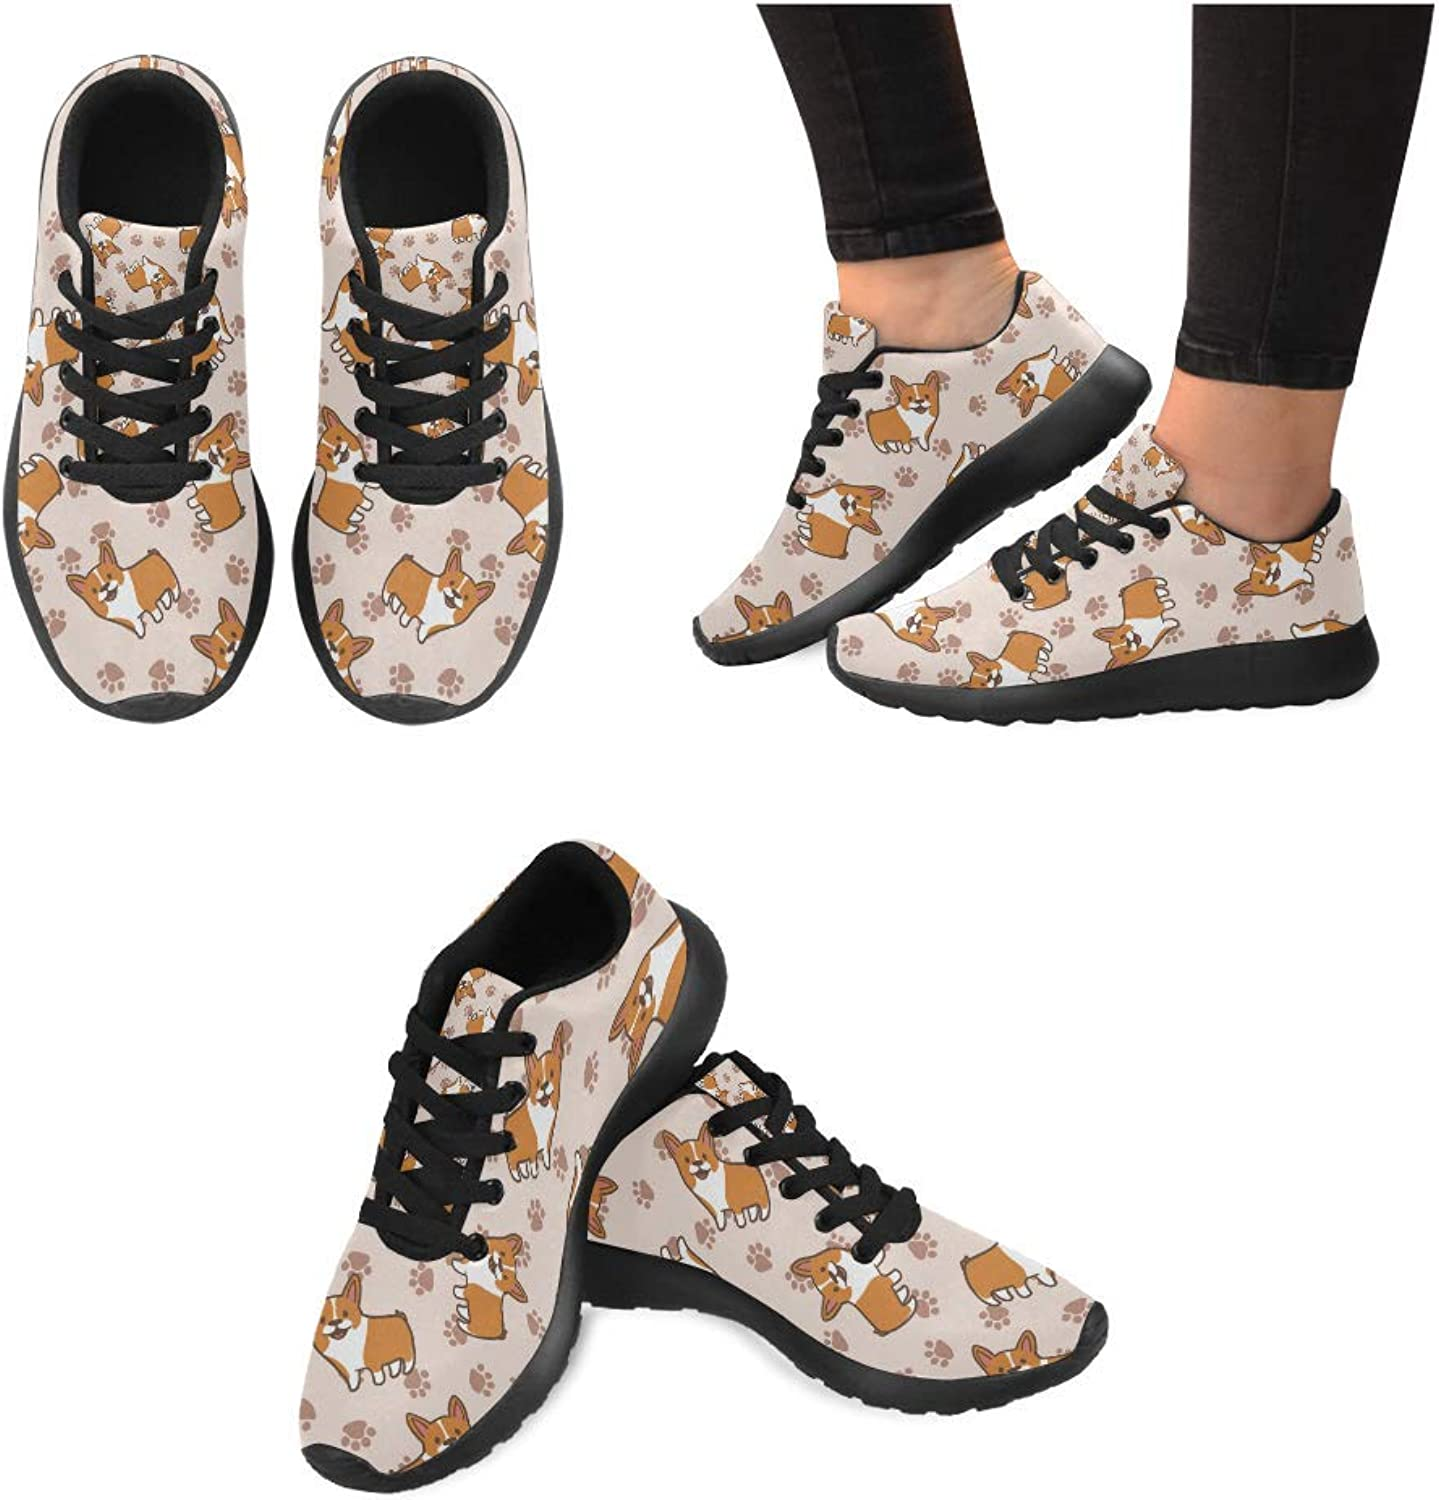 InterestPrint Women Lightweight Casual Sneaker Running shoes Corgi Dogs Prints